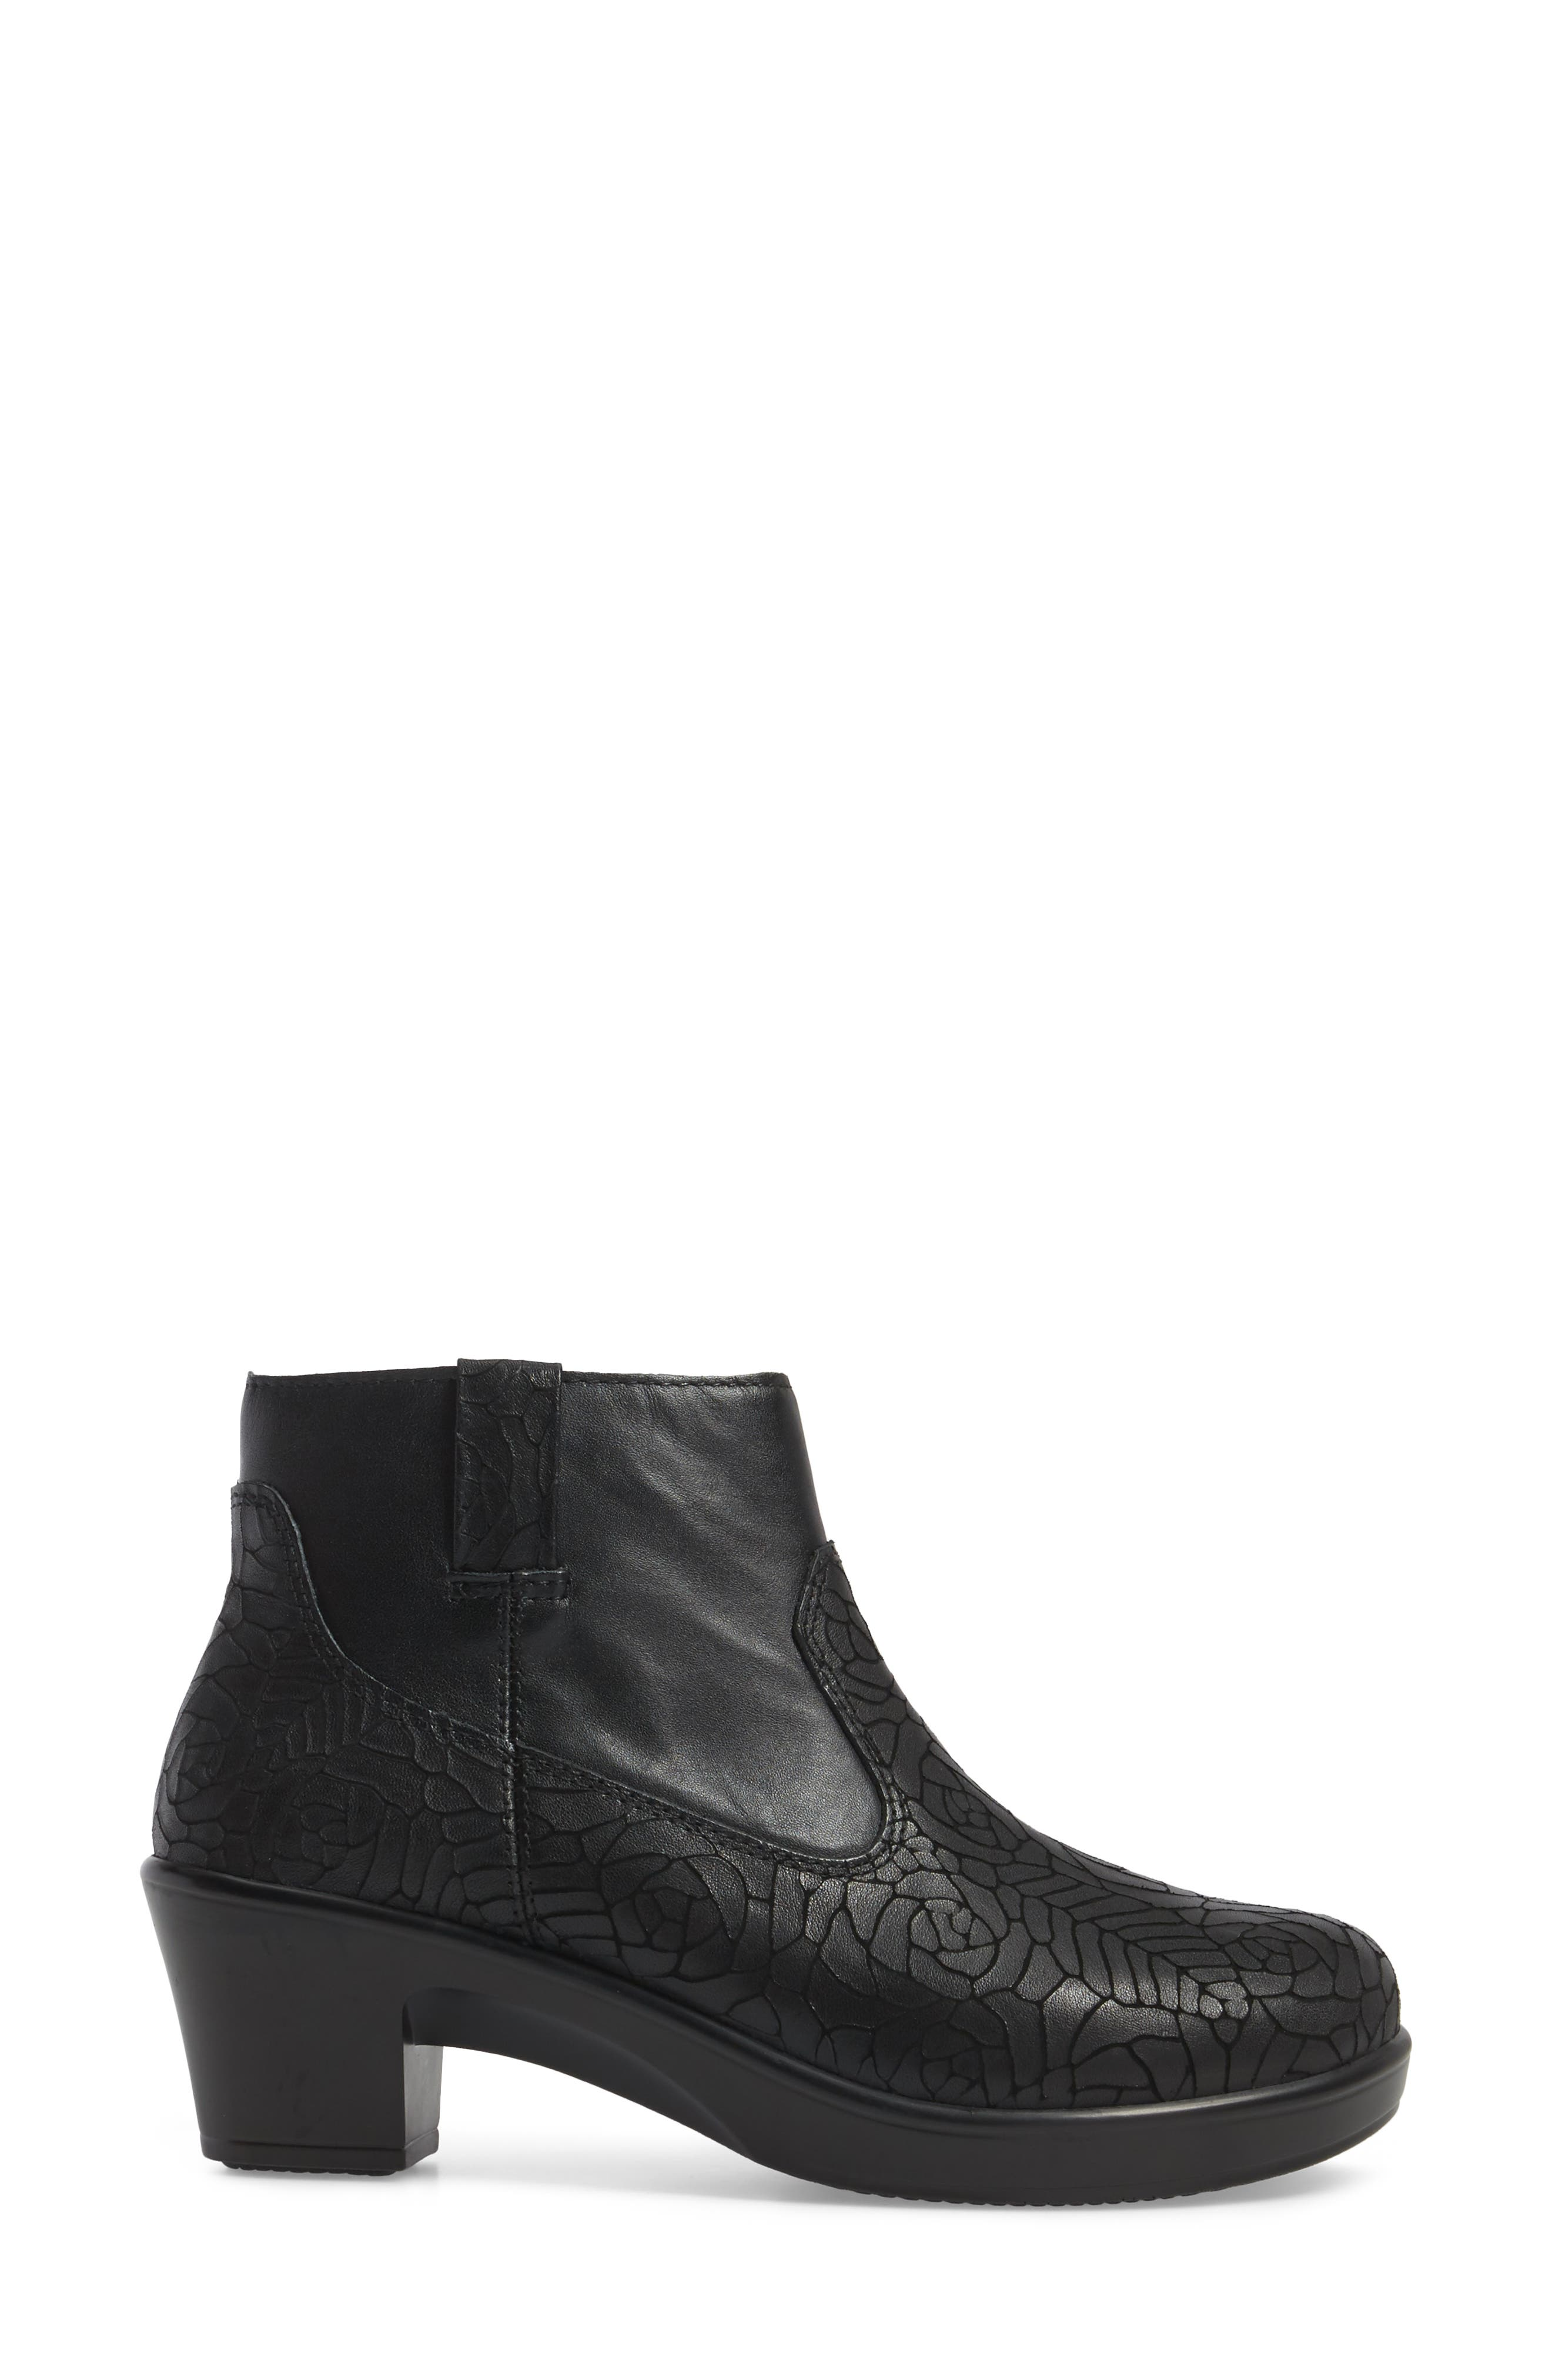 Hayden Bootie,                             Alternate thumbnail 3, color,                             FLORAL NOTES LEATHER